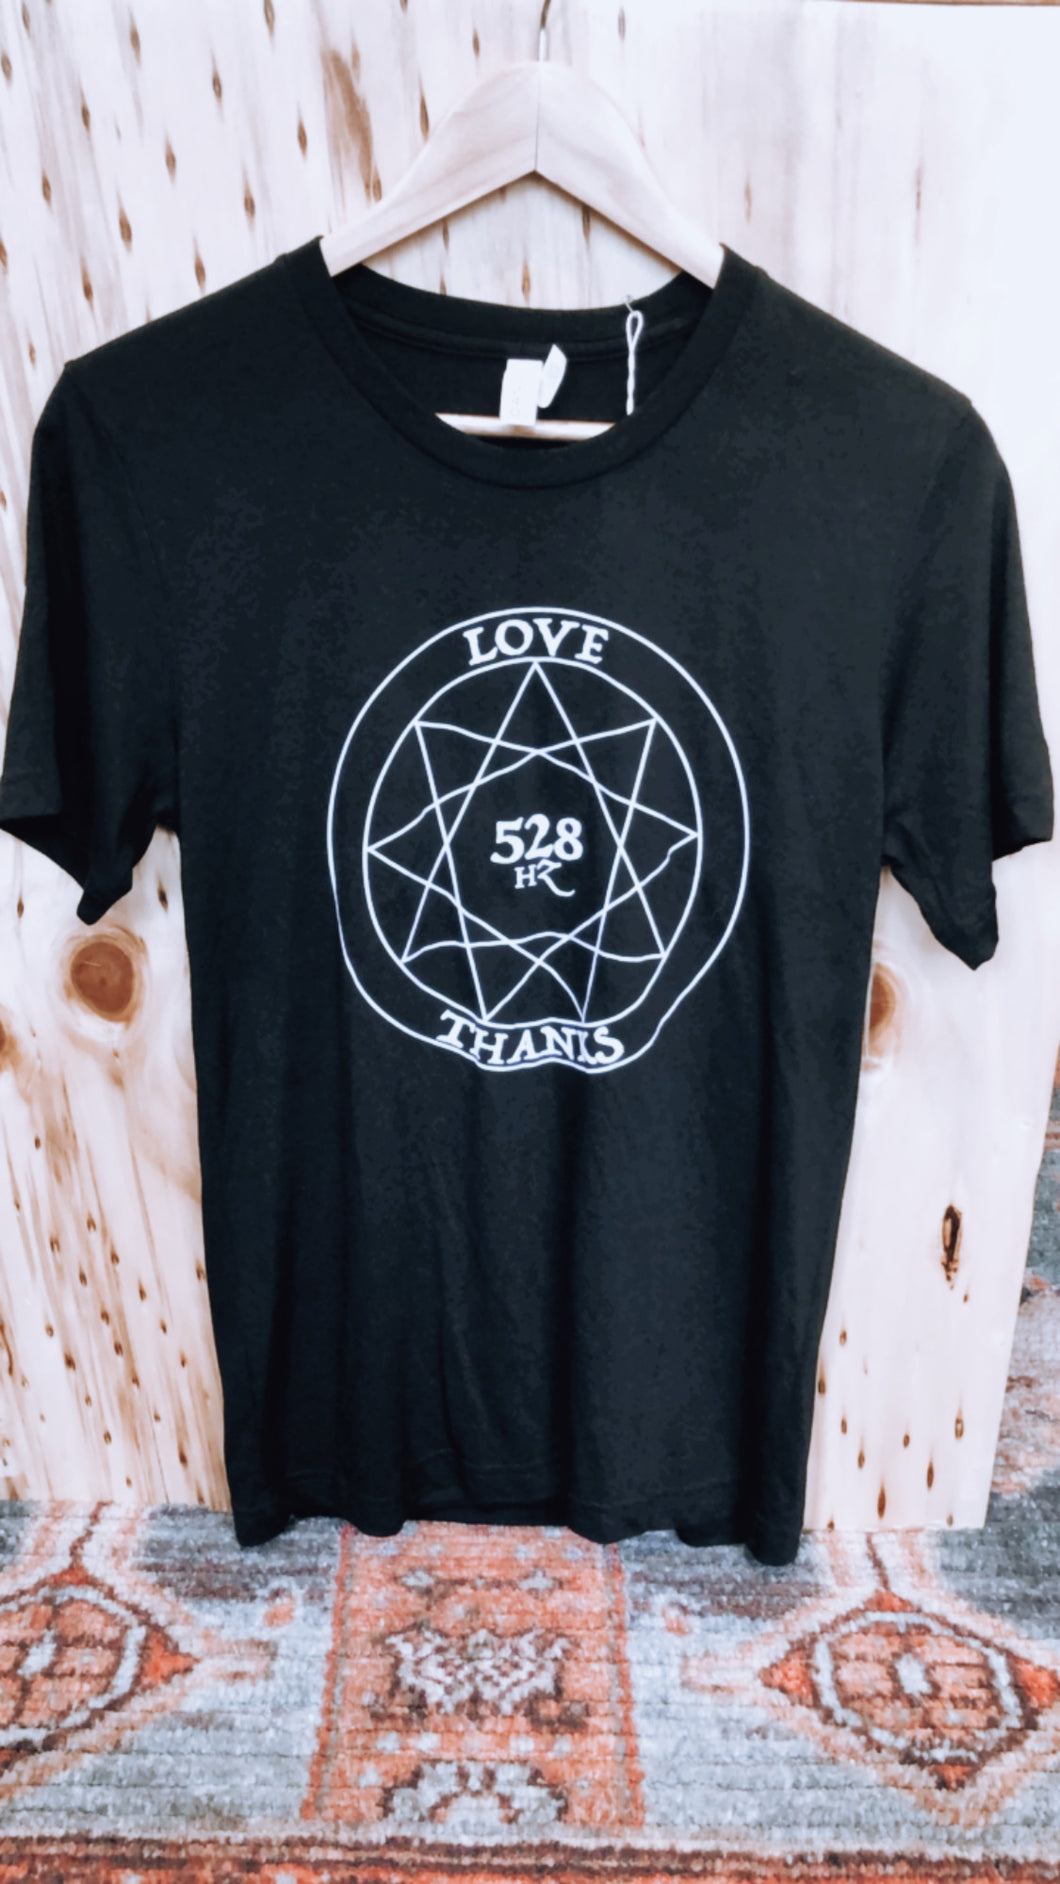 ISOW Healing Arts 528hz Tee Shirt